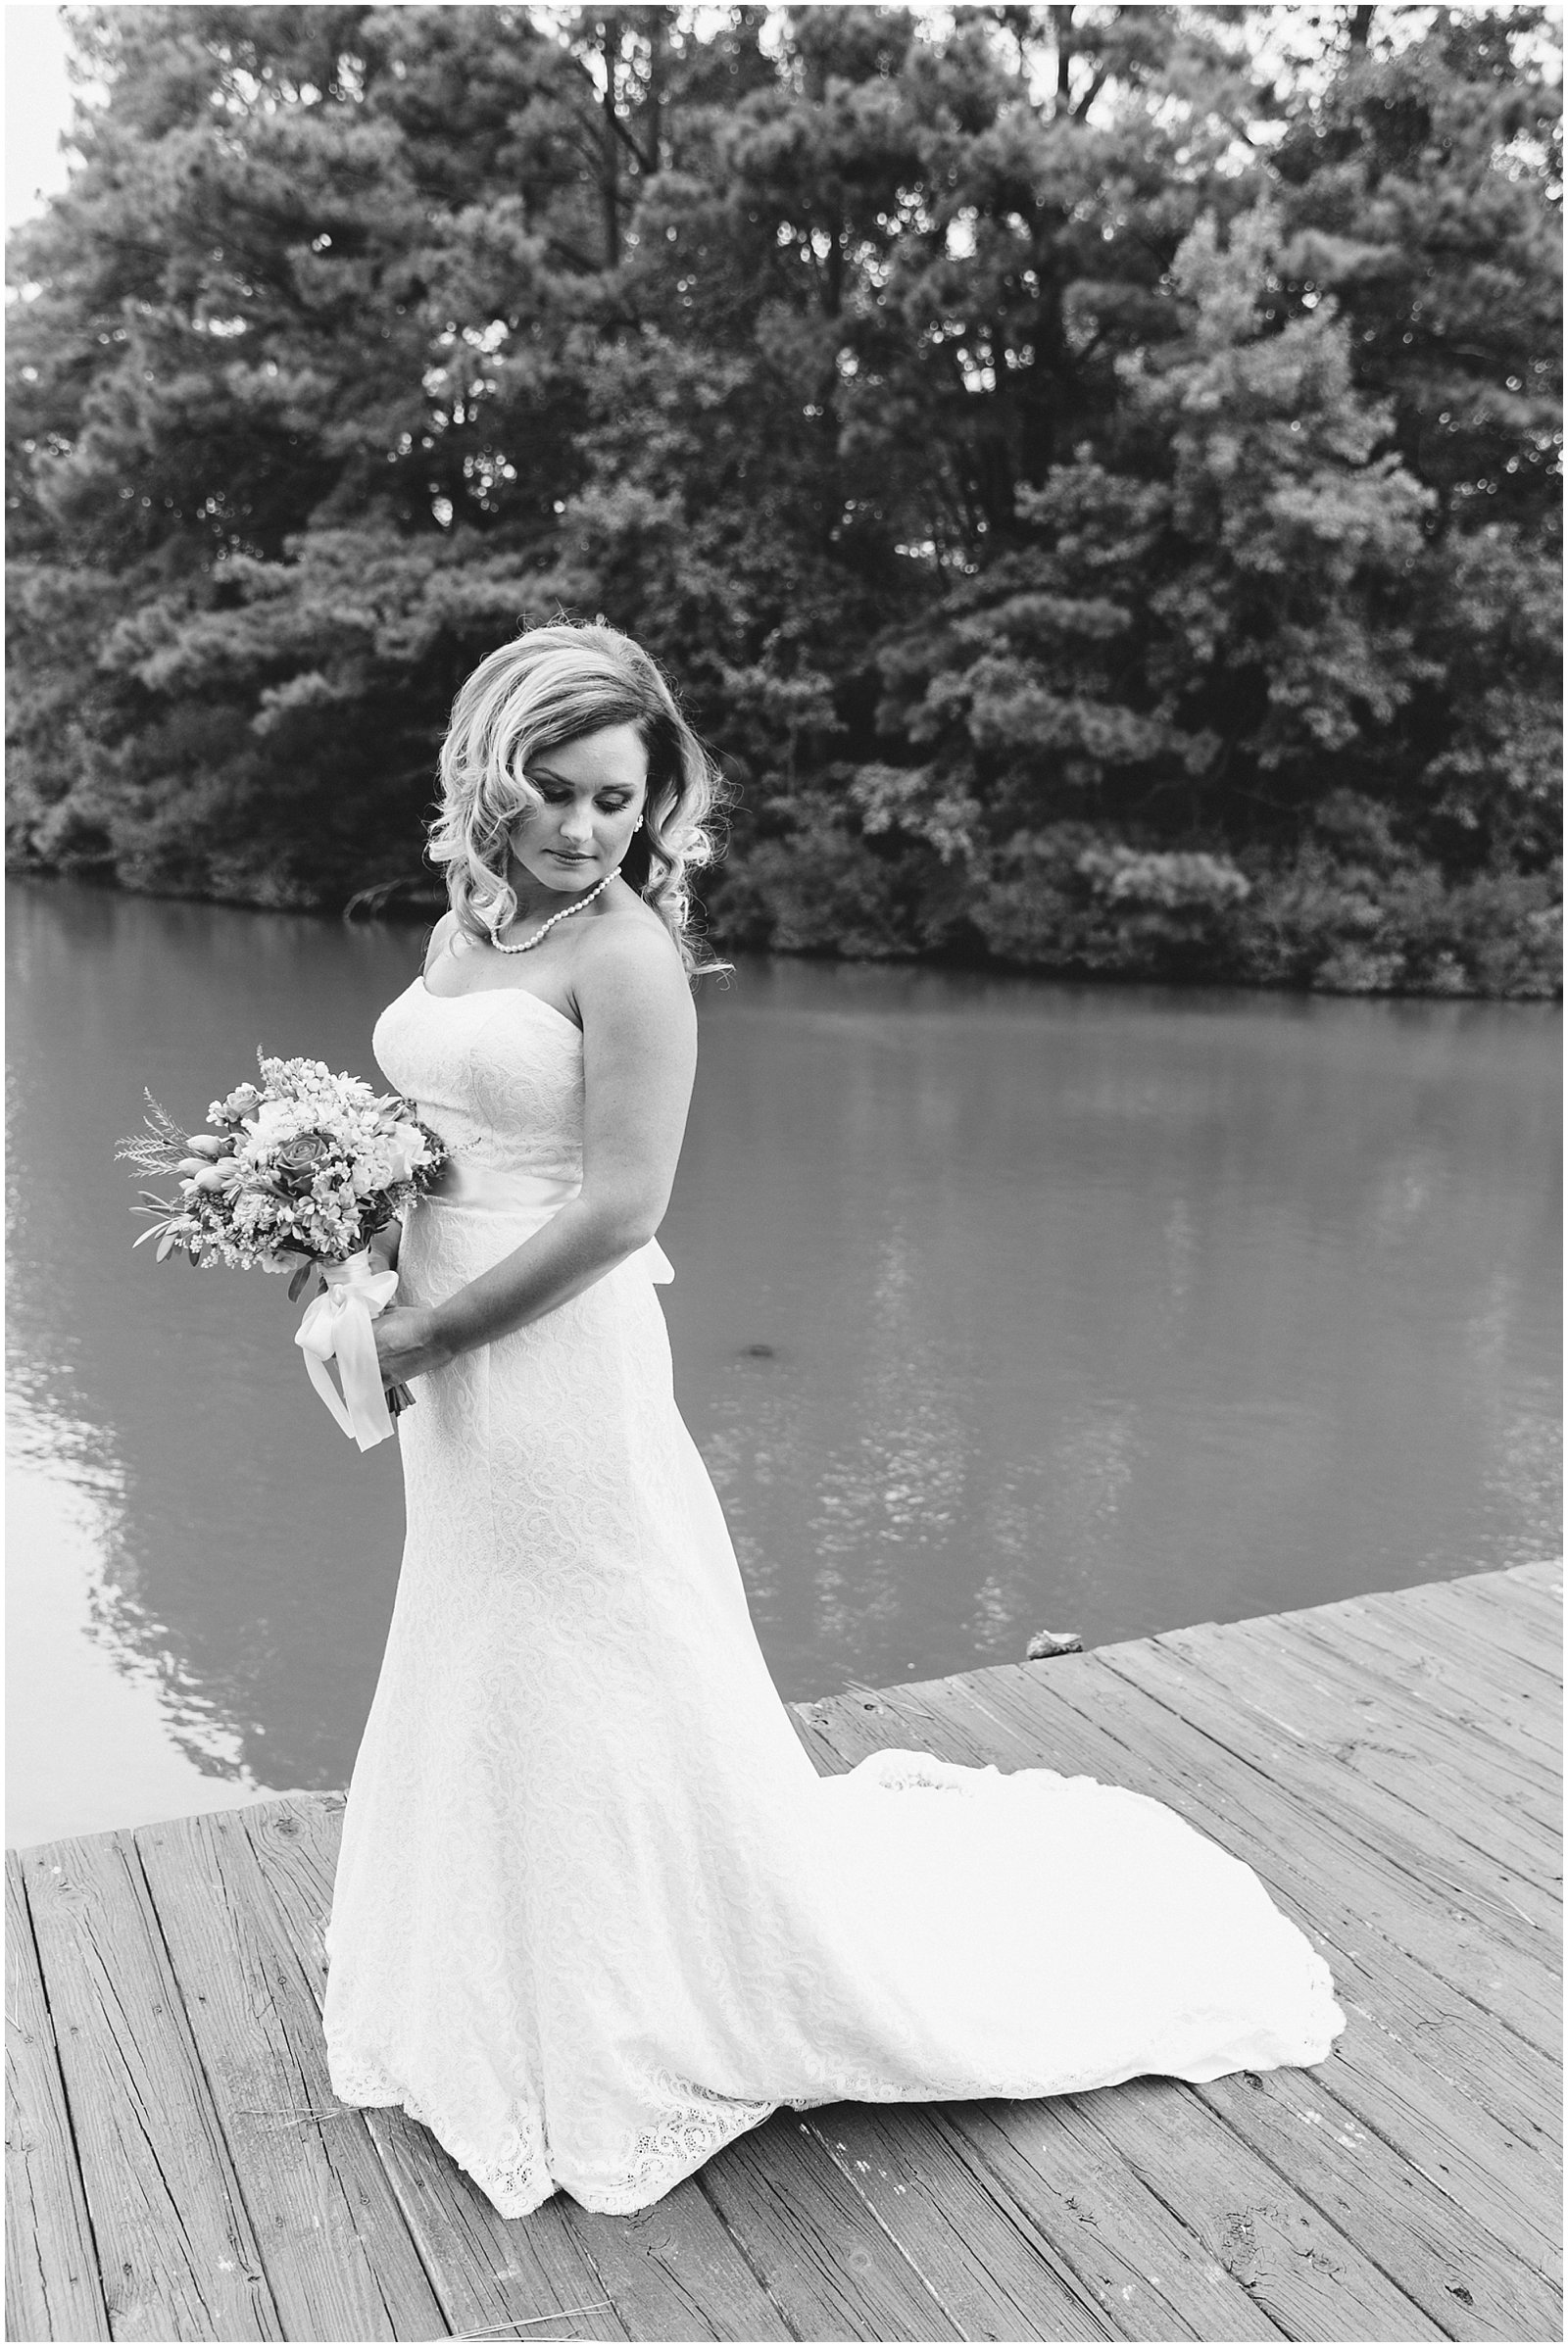 jessica_ryan_photography_wedding_virginia_beach_virginia_wedding_photographer_candid_wedding_photography_lifestyle_photojournalistic_real_moments_0136